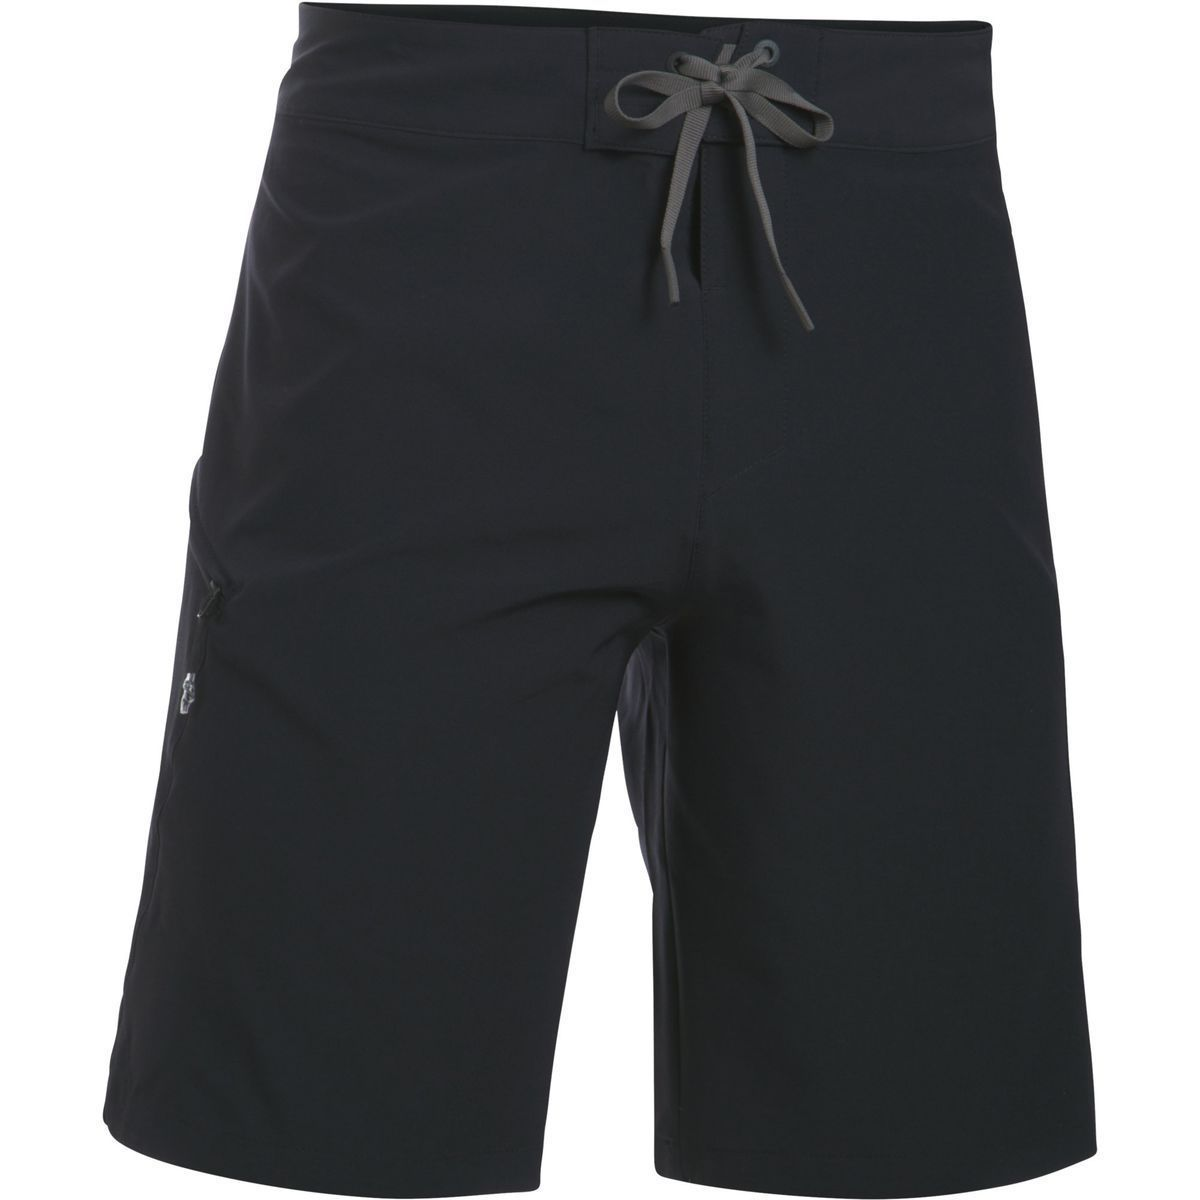 2393f3f9c0 Swimwear 15690: New Under Armour Reblek Boardshorts Mens 32-38 Black Swim  Shorts Free Ship -> BUY IT NOW ONLY: $42.5 on eBay!